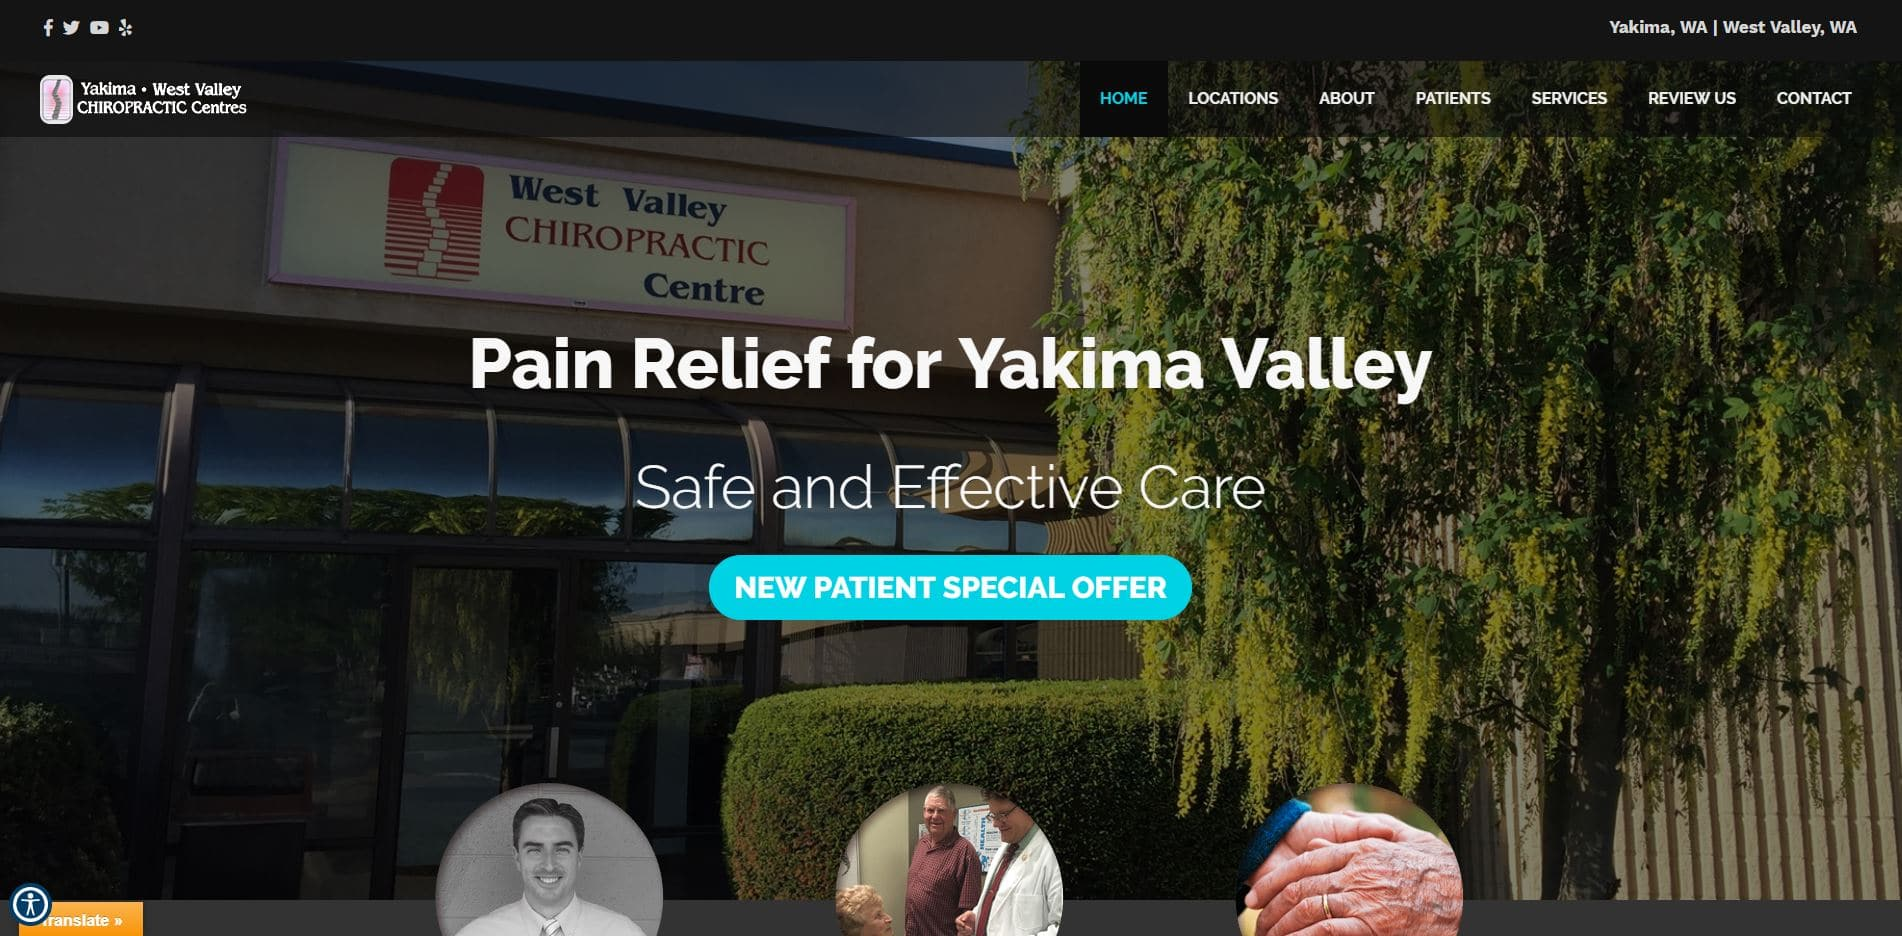 Chiropractor in West Valley